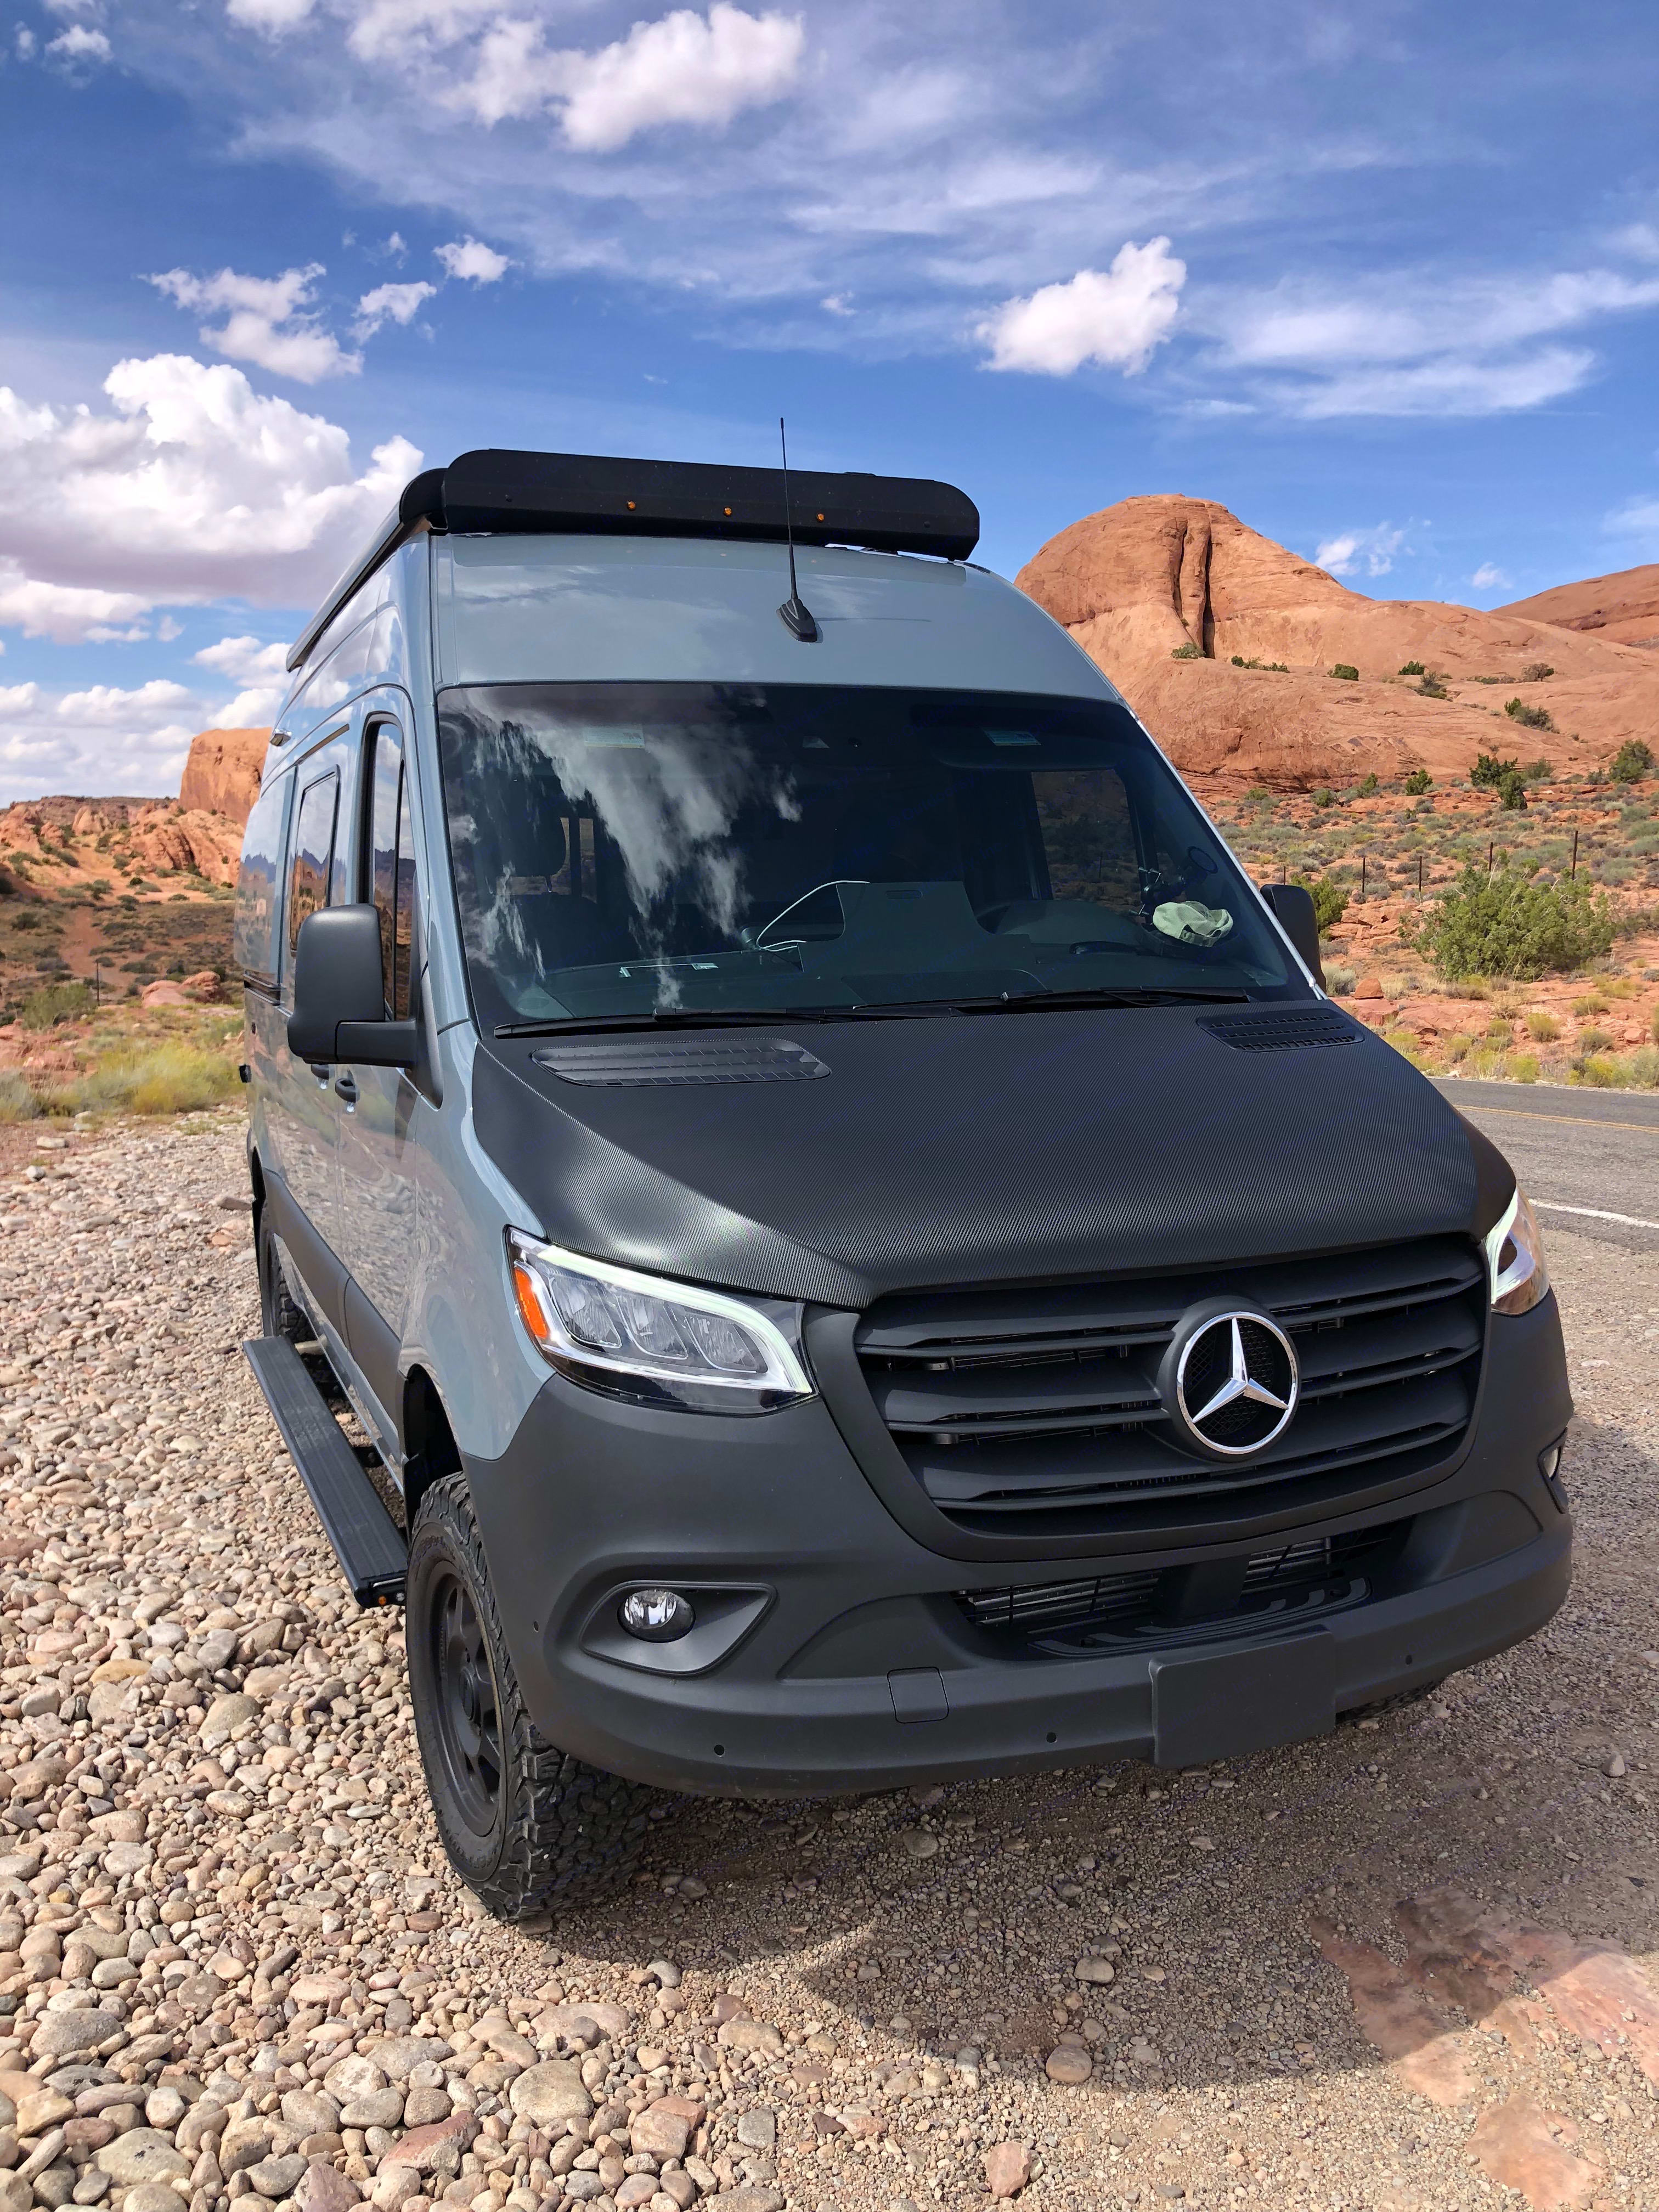 Home base while Jeeping trails in Moab, UT. Winnebago Mercedes Sprinter 2020